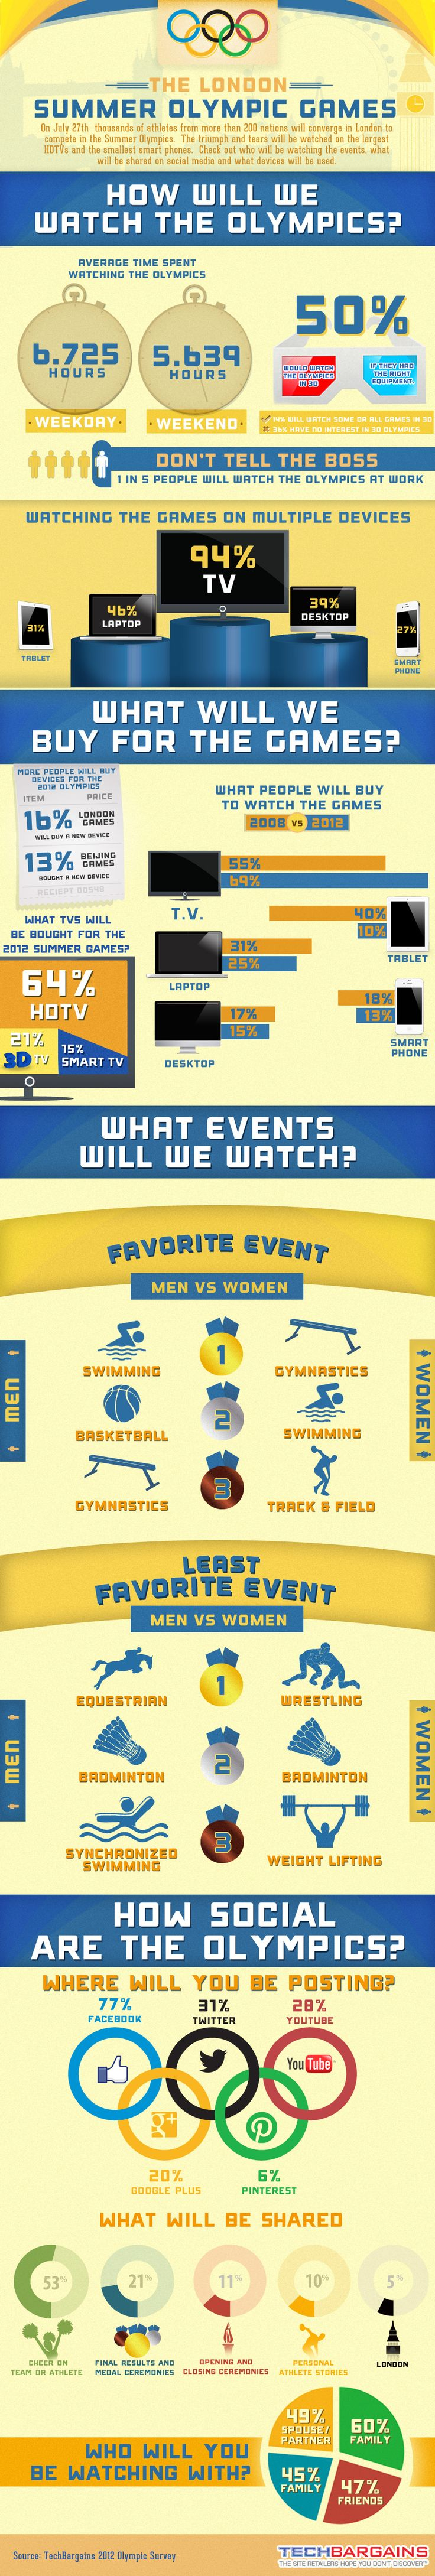 Social Media Infographic: Facebook More Popular Than Twitter, Google+ for Talking About the Olympics [Infographic]